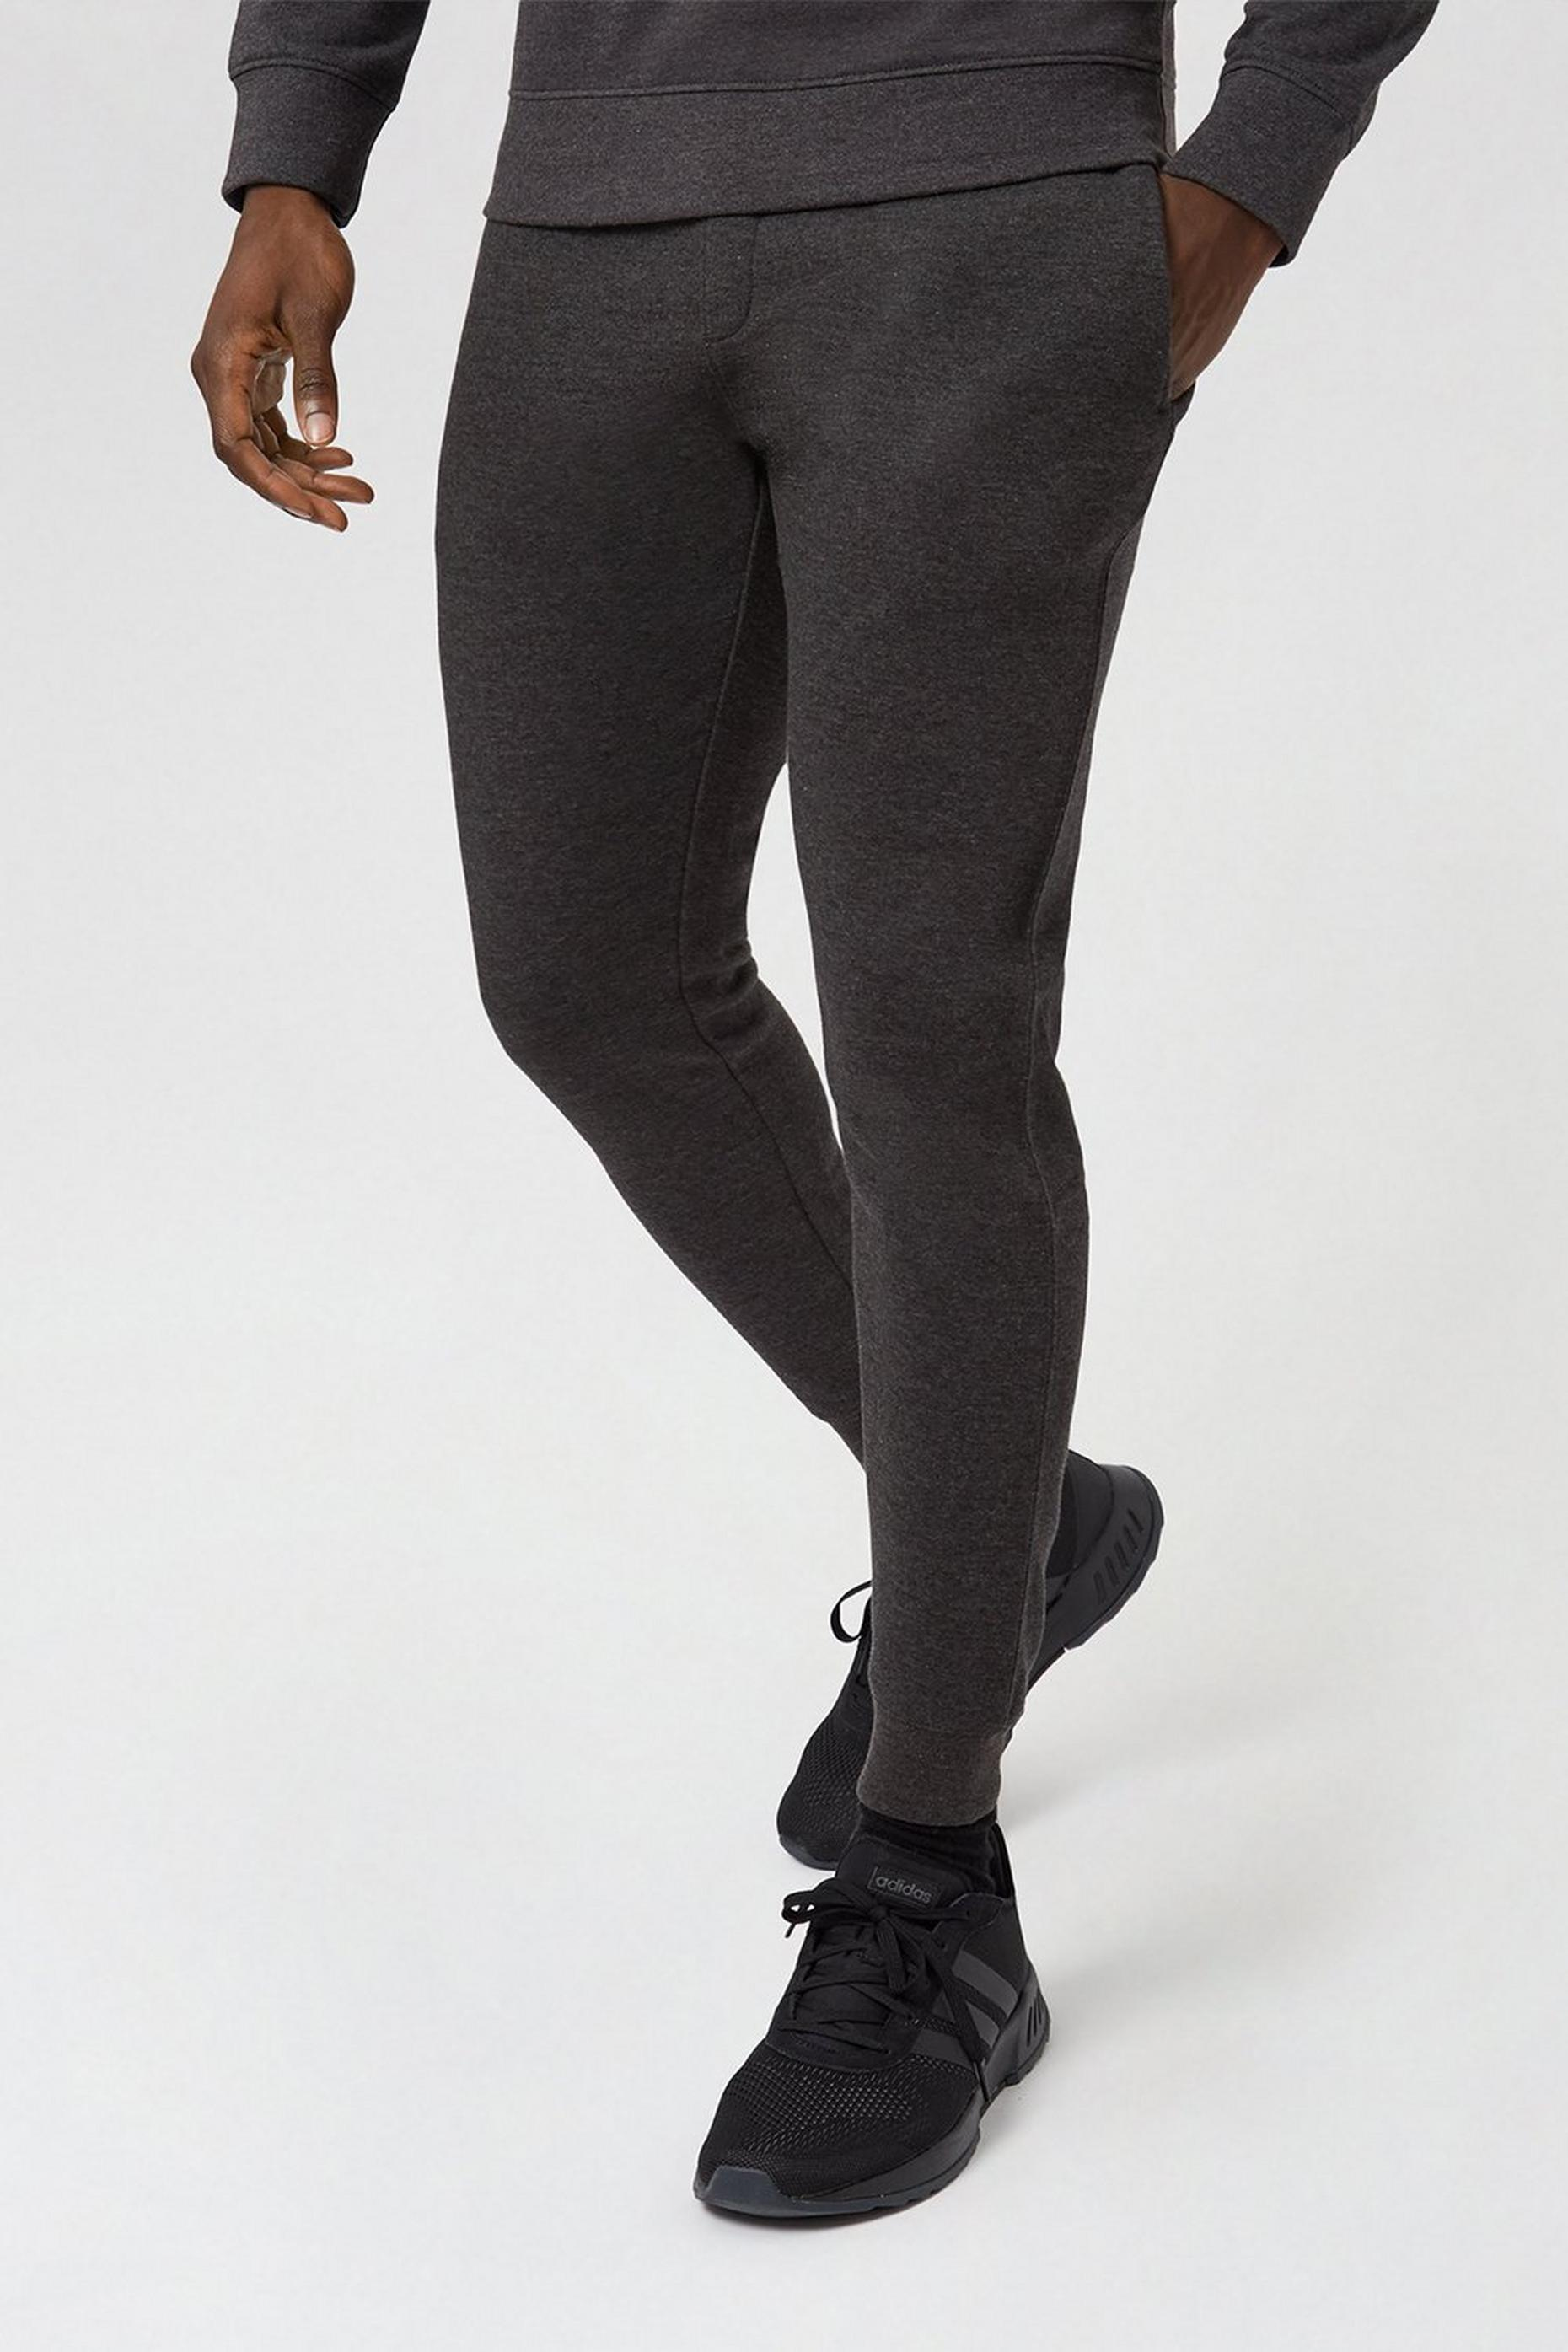 Charcoal Muscle Fit Joggers